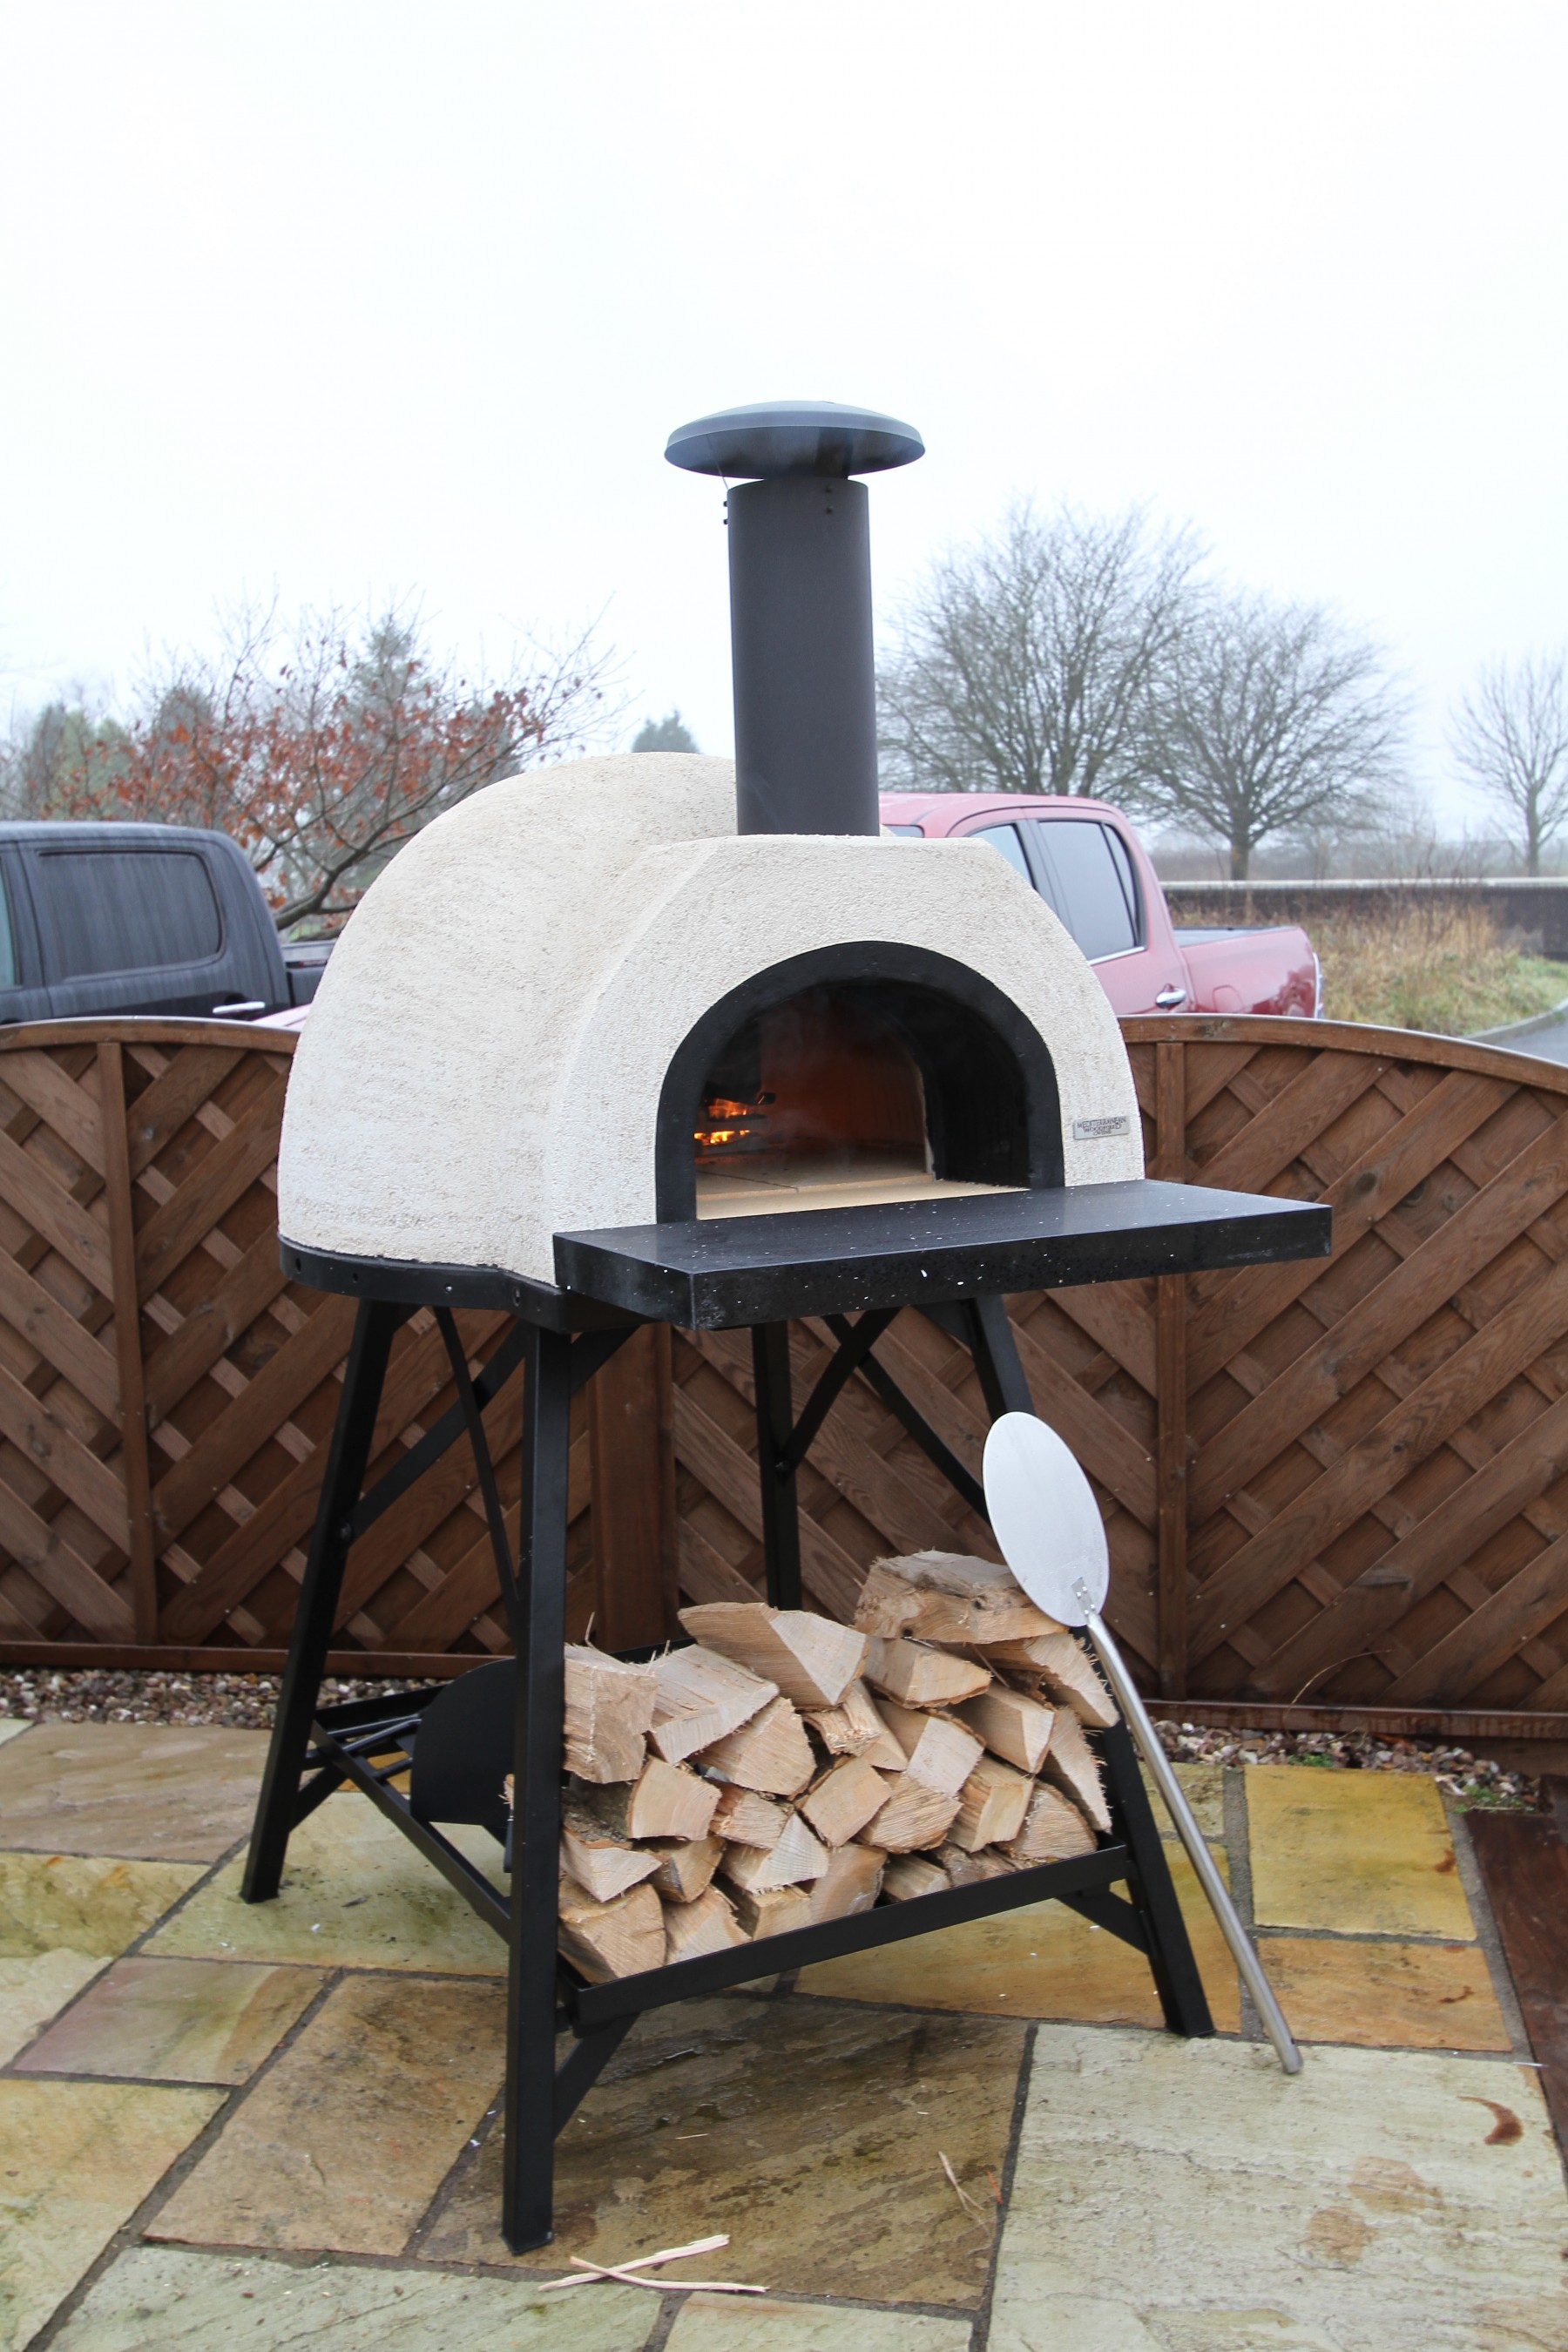 Wild Goose Wg70 Wood Fired Pizza Oven